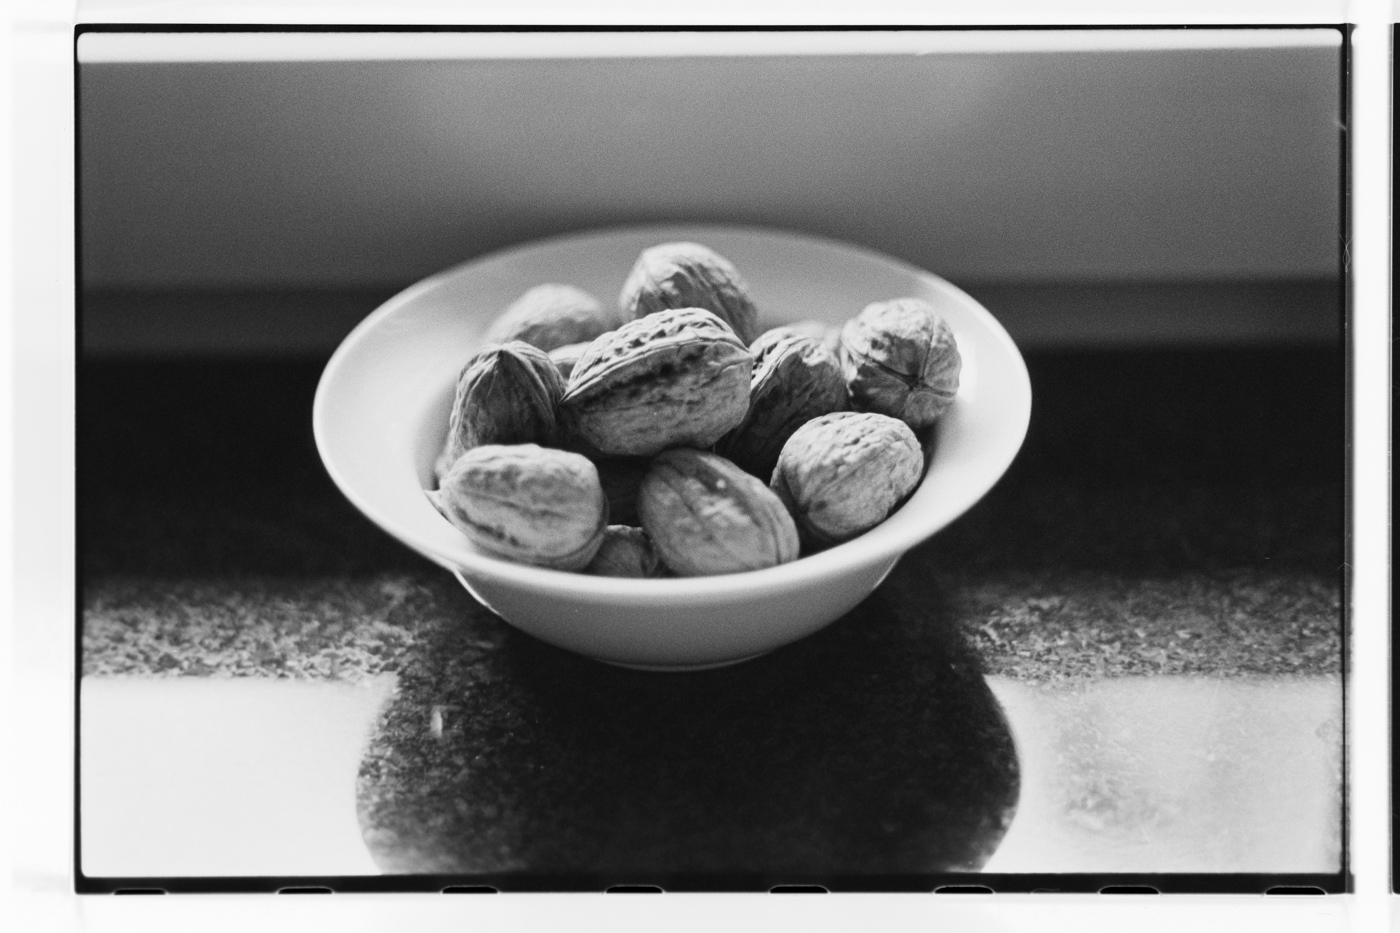 walnuts on plate black and white still life